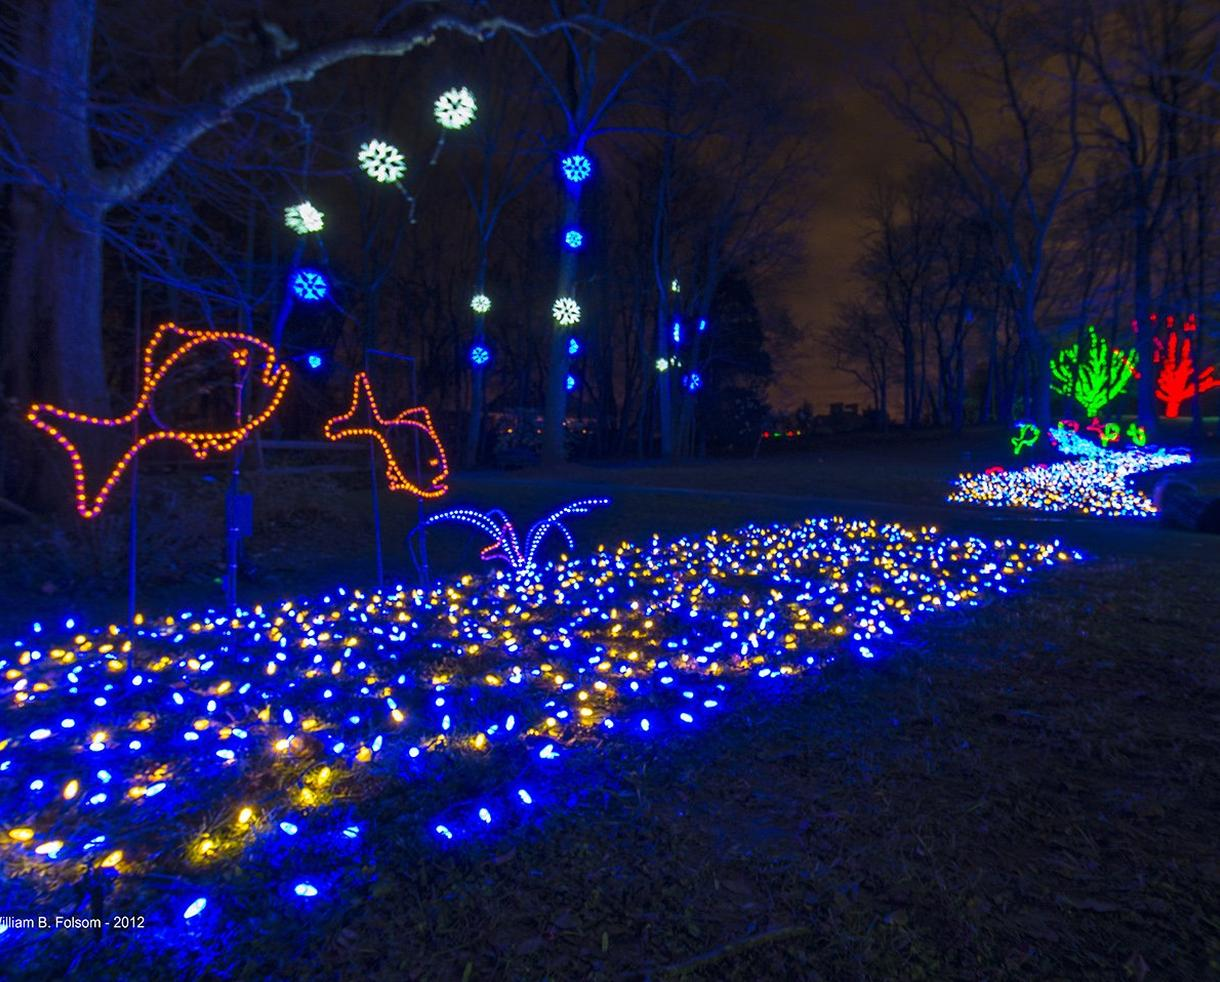 Two Admissions to Meadowlark's Winter Walk of Lights